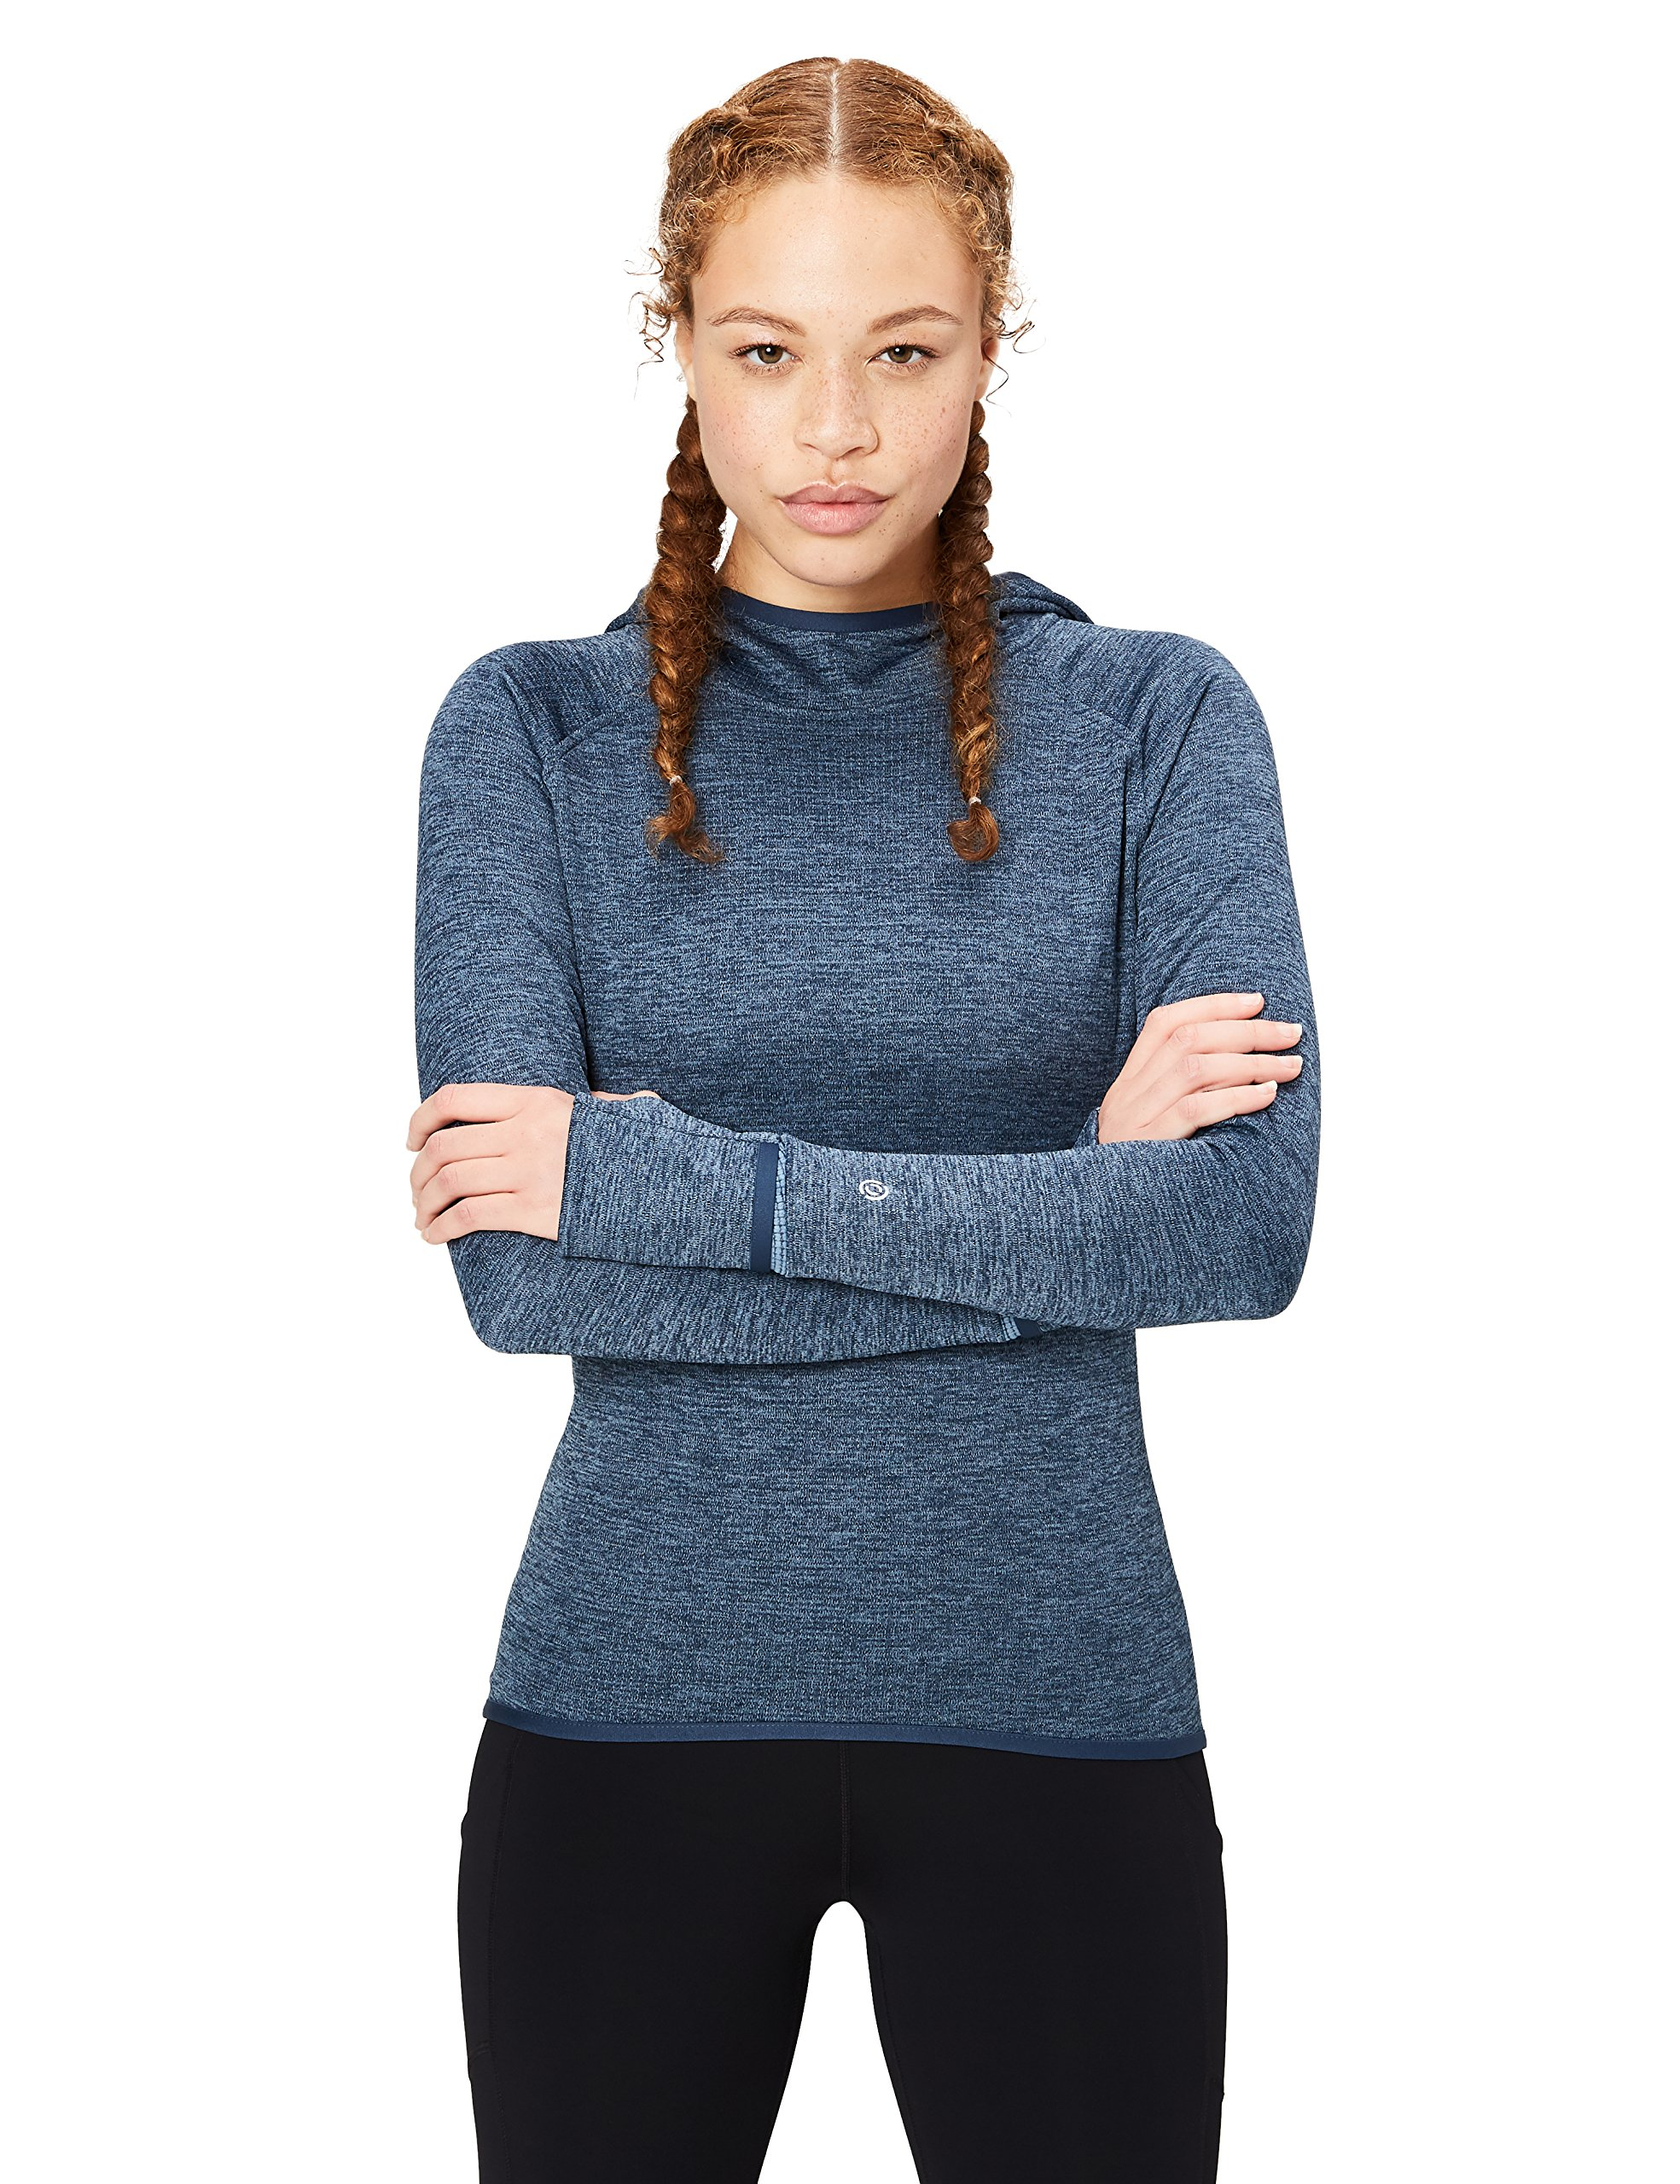 Core 10 Women's Be Warm Thermal Fitted Run Hoodie (XS-XL, Plus Size 1X-3X), Denim Heather, M (8-10)